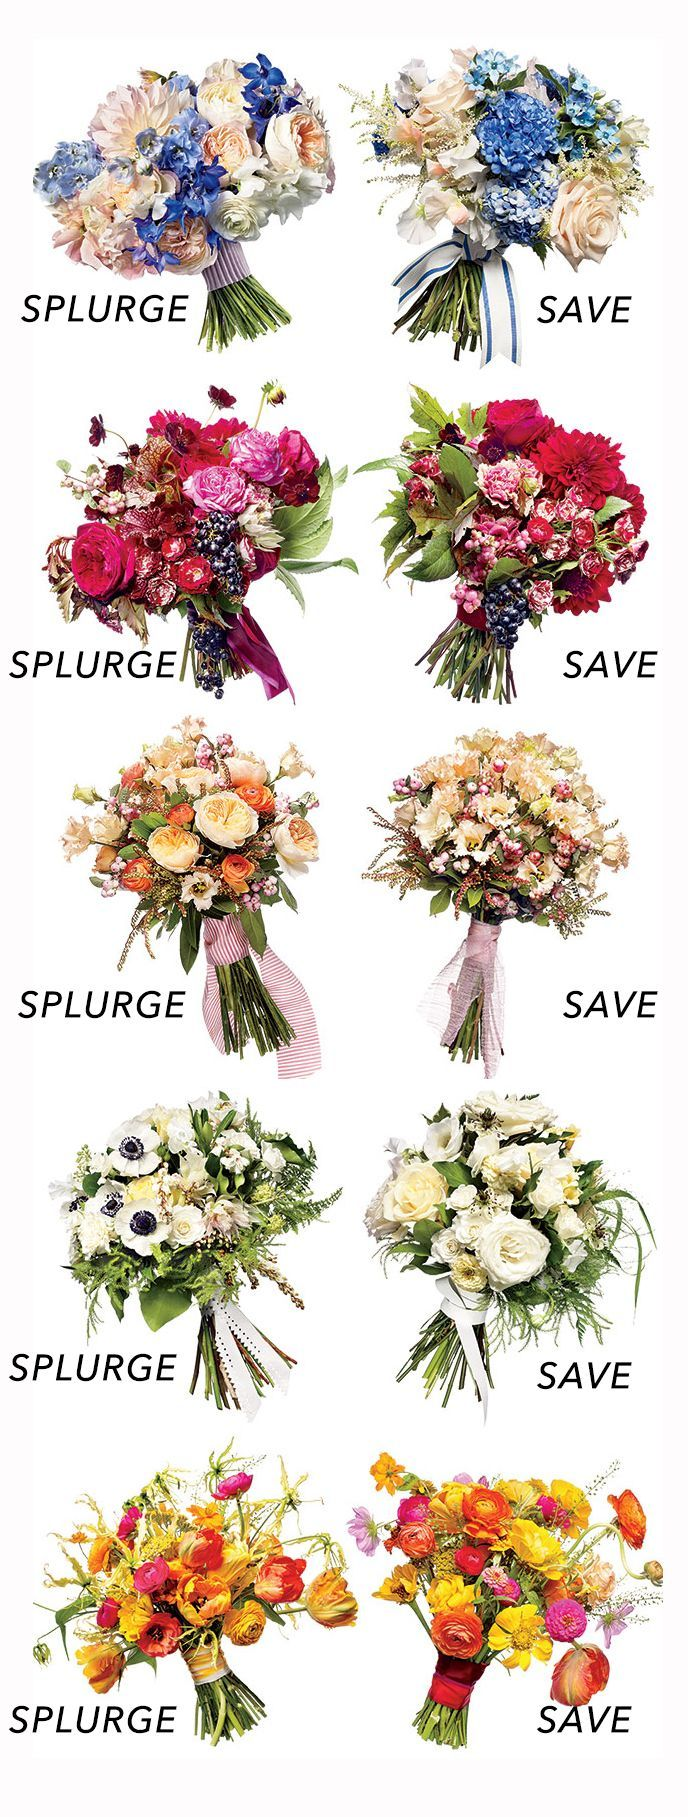 Save Vs Splurge Wedding Bouquets Garden Wedding Pinterest